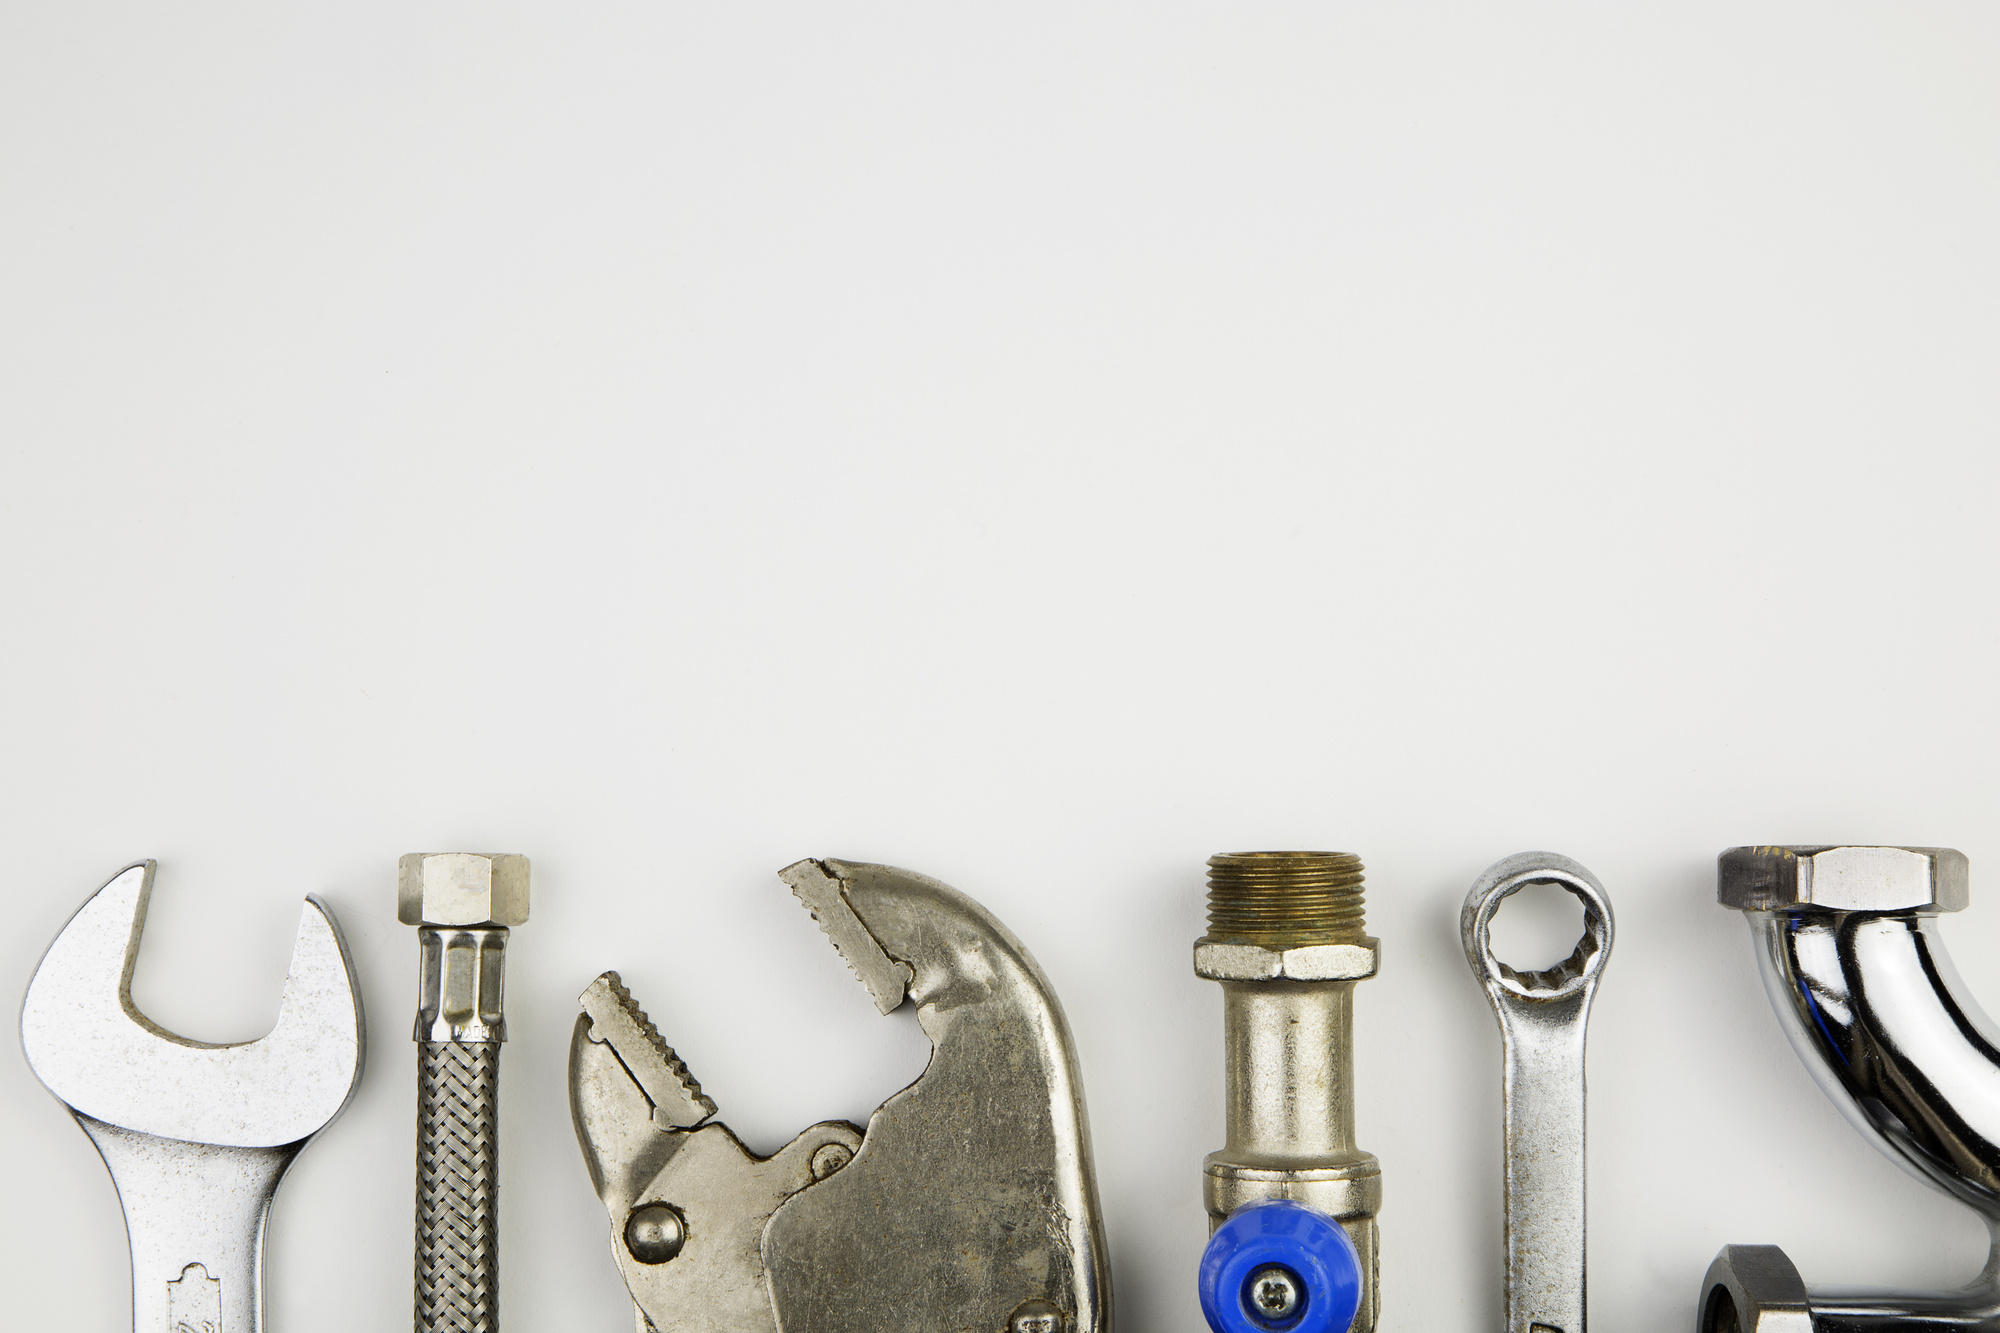 8 Tips for Finding a Plumber Who You Can Truly Rely On